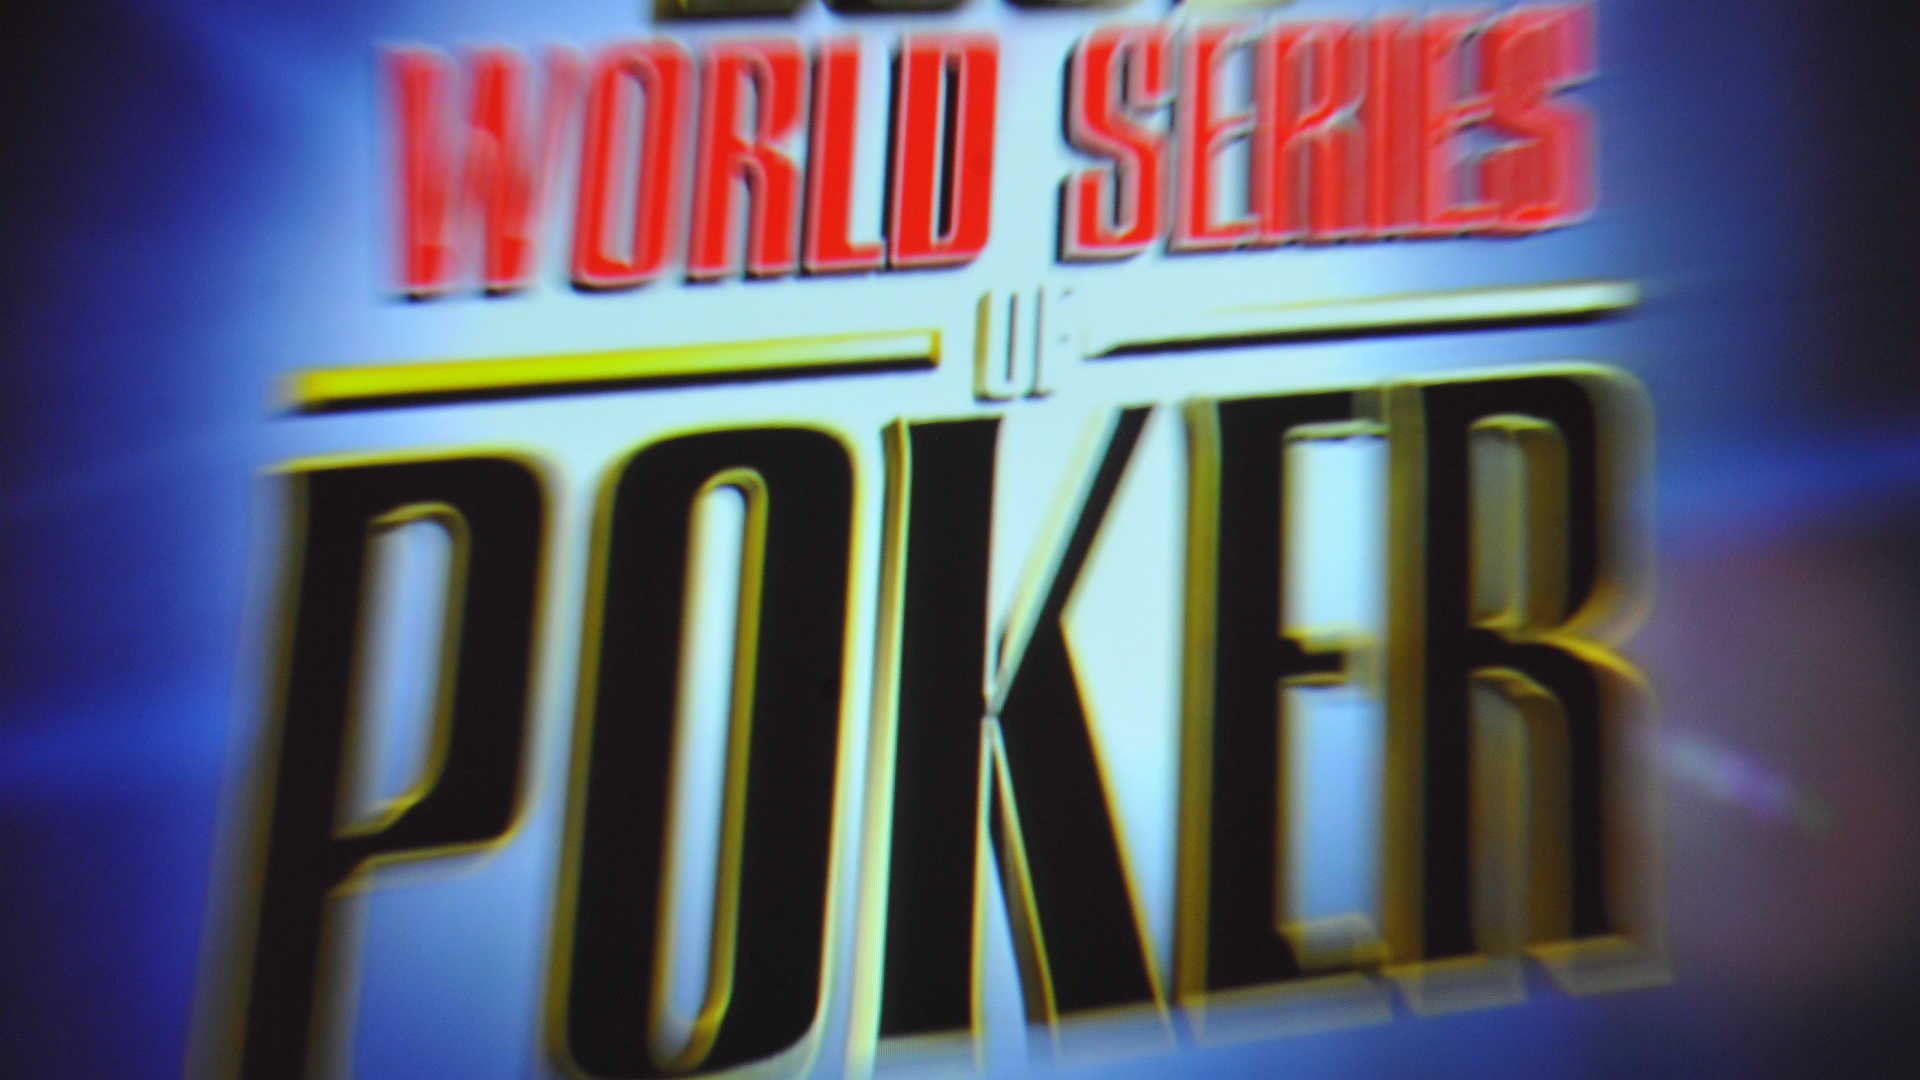 World Series Of Poker 2019 Results Payouts Hossein Ensan Takes Bracelet 10m First Prize Sporting News